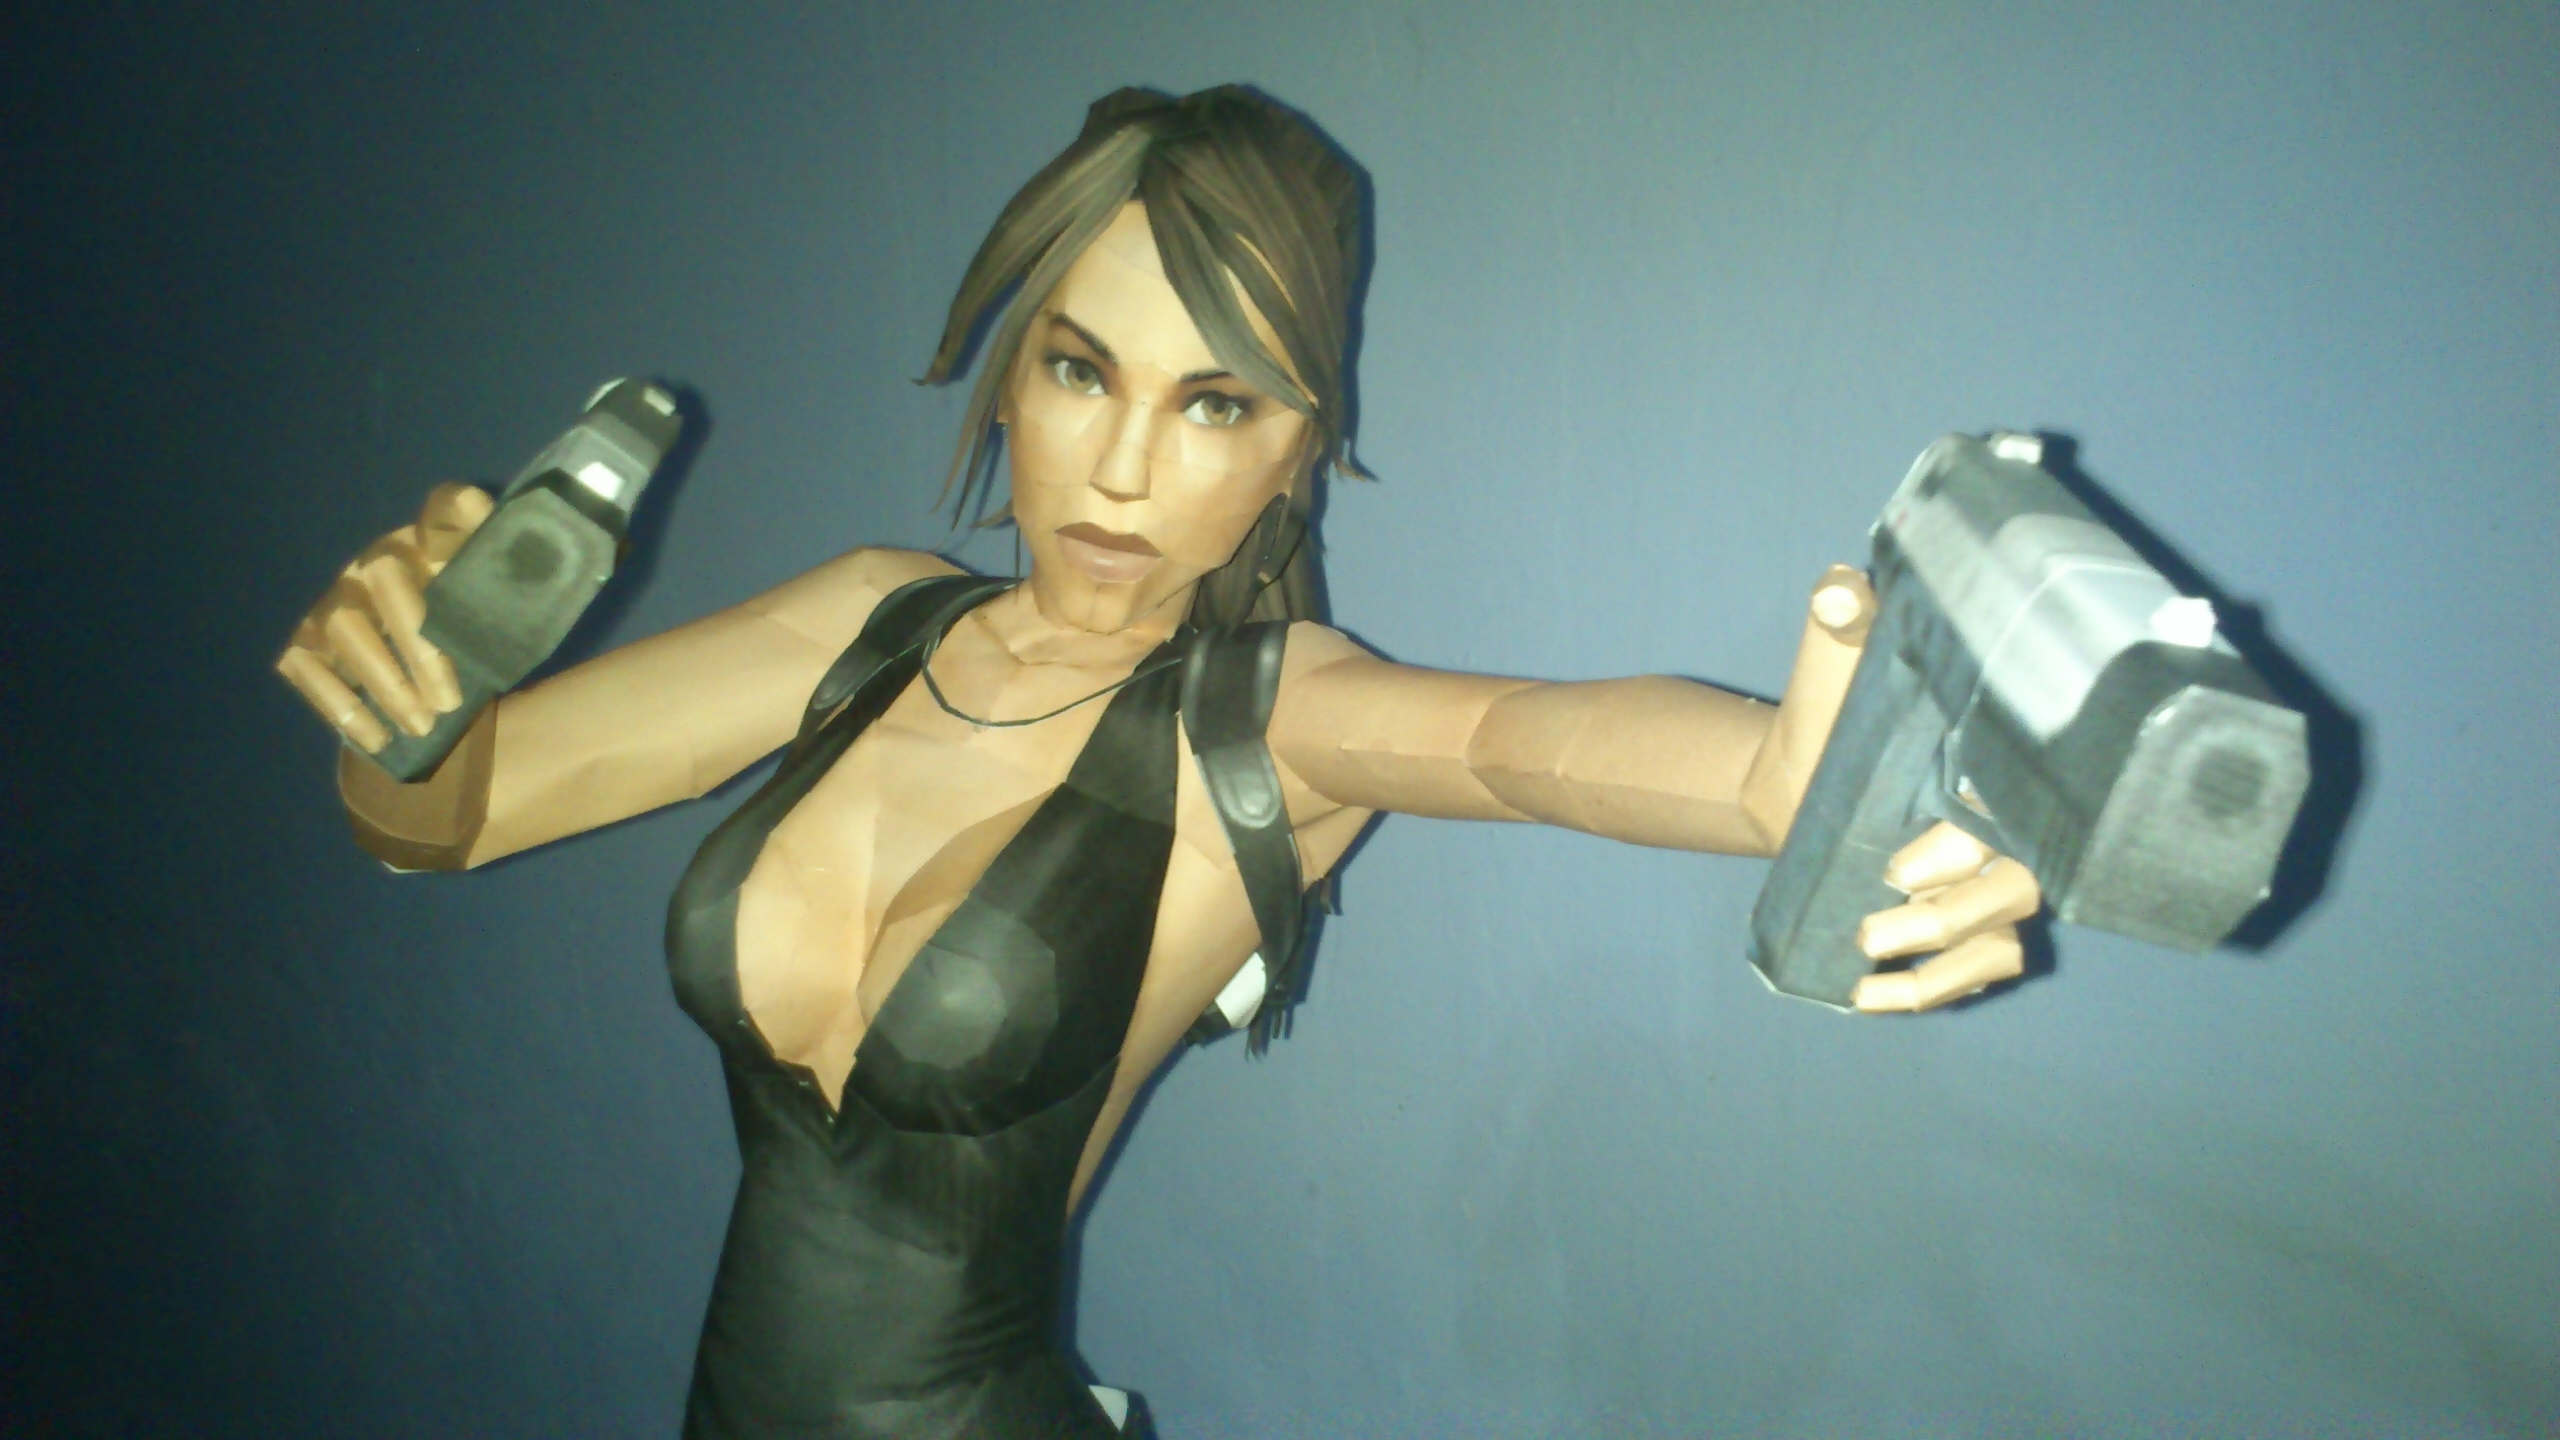 Lara Croft Papercraft PDO search by Sabi996